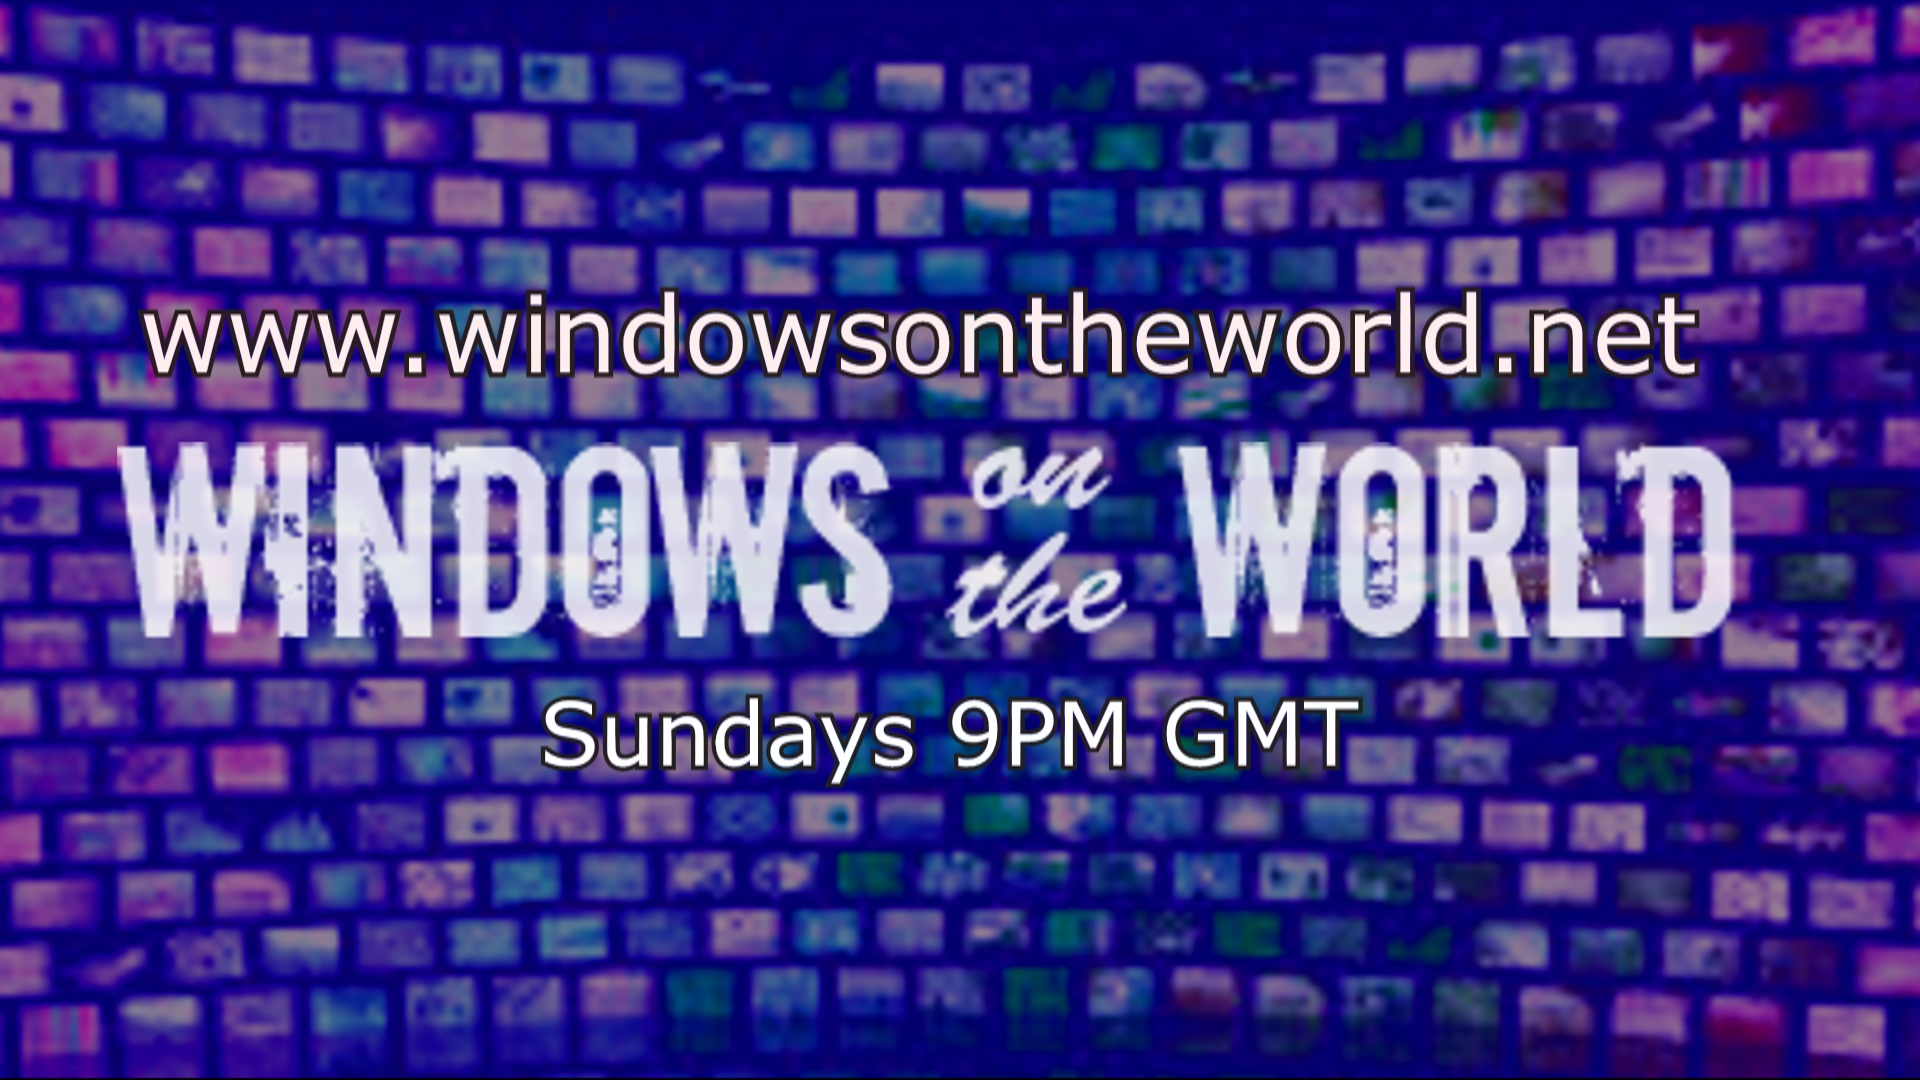 Windows on the World every Sunday 9pm GMT